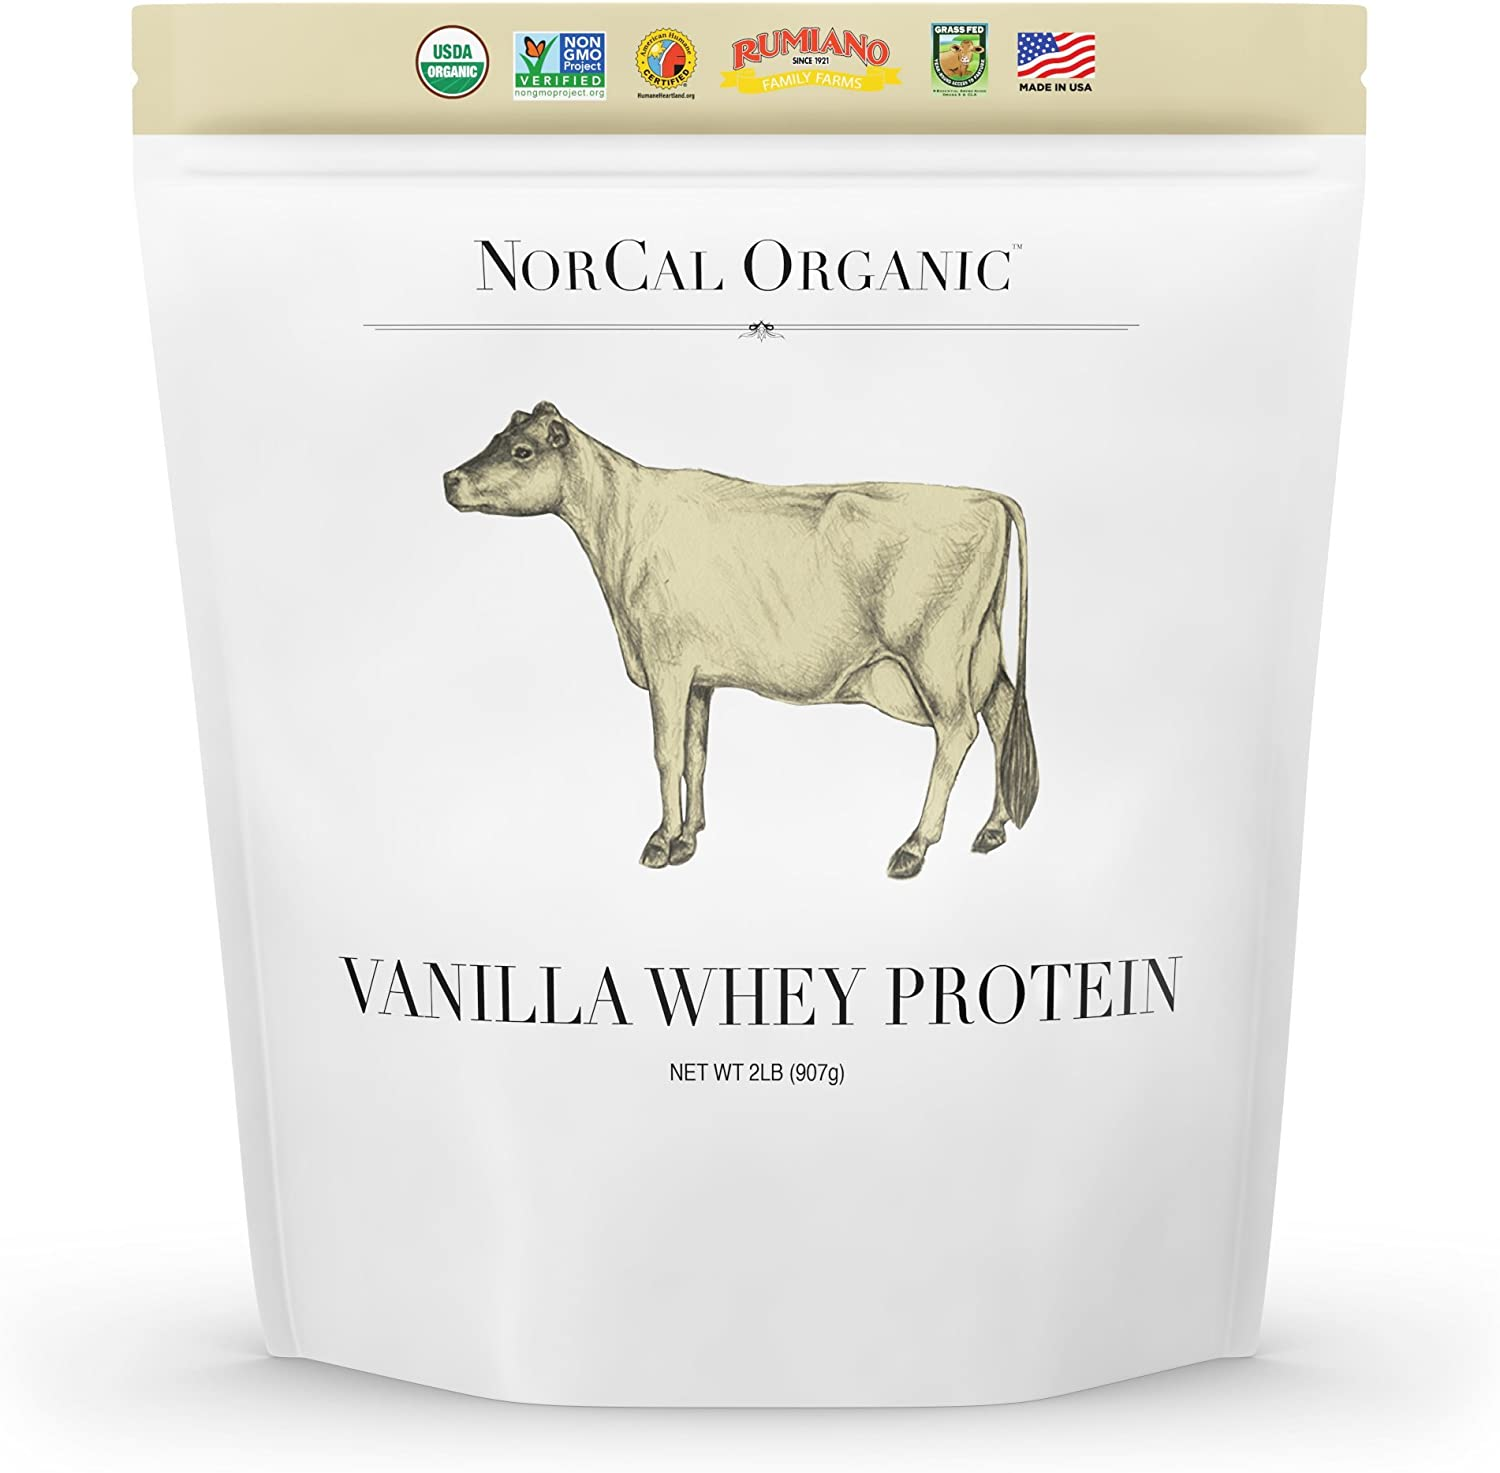 Norcal Organic Grass Fed Whey Protein Powder, Vanilla, 2lbs 21g Protein, 4.9g BCAA, 100 Calories per Serving Pasture Raised, Non-Denatured, Non GMO, Soy Free, Gluten Free, Source Organic